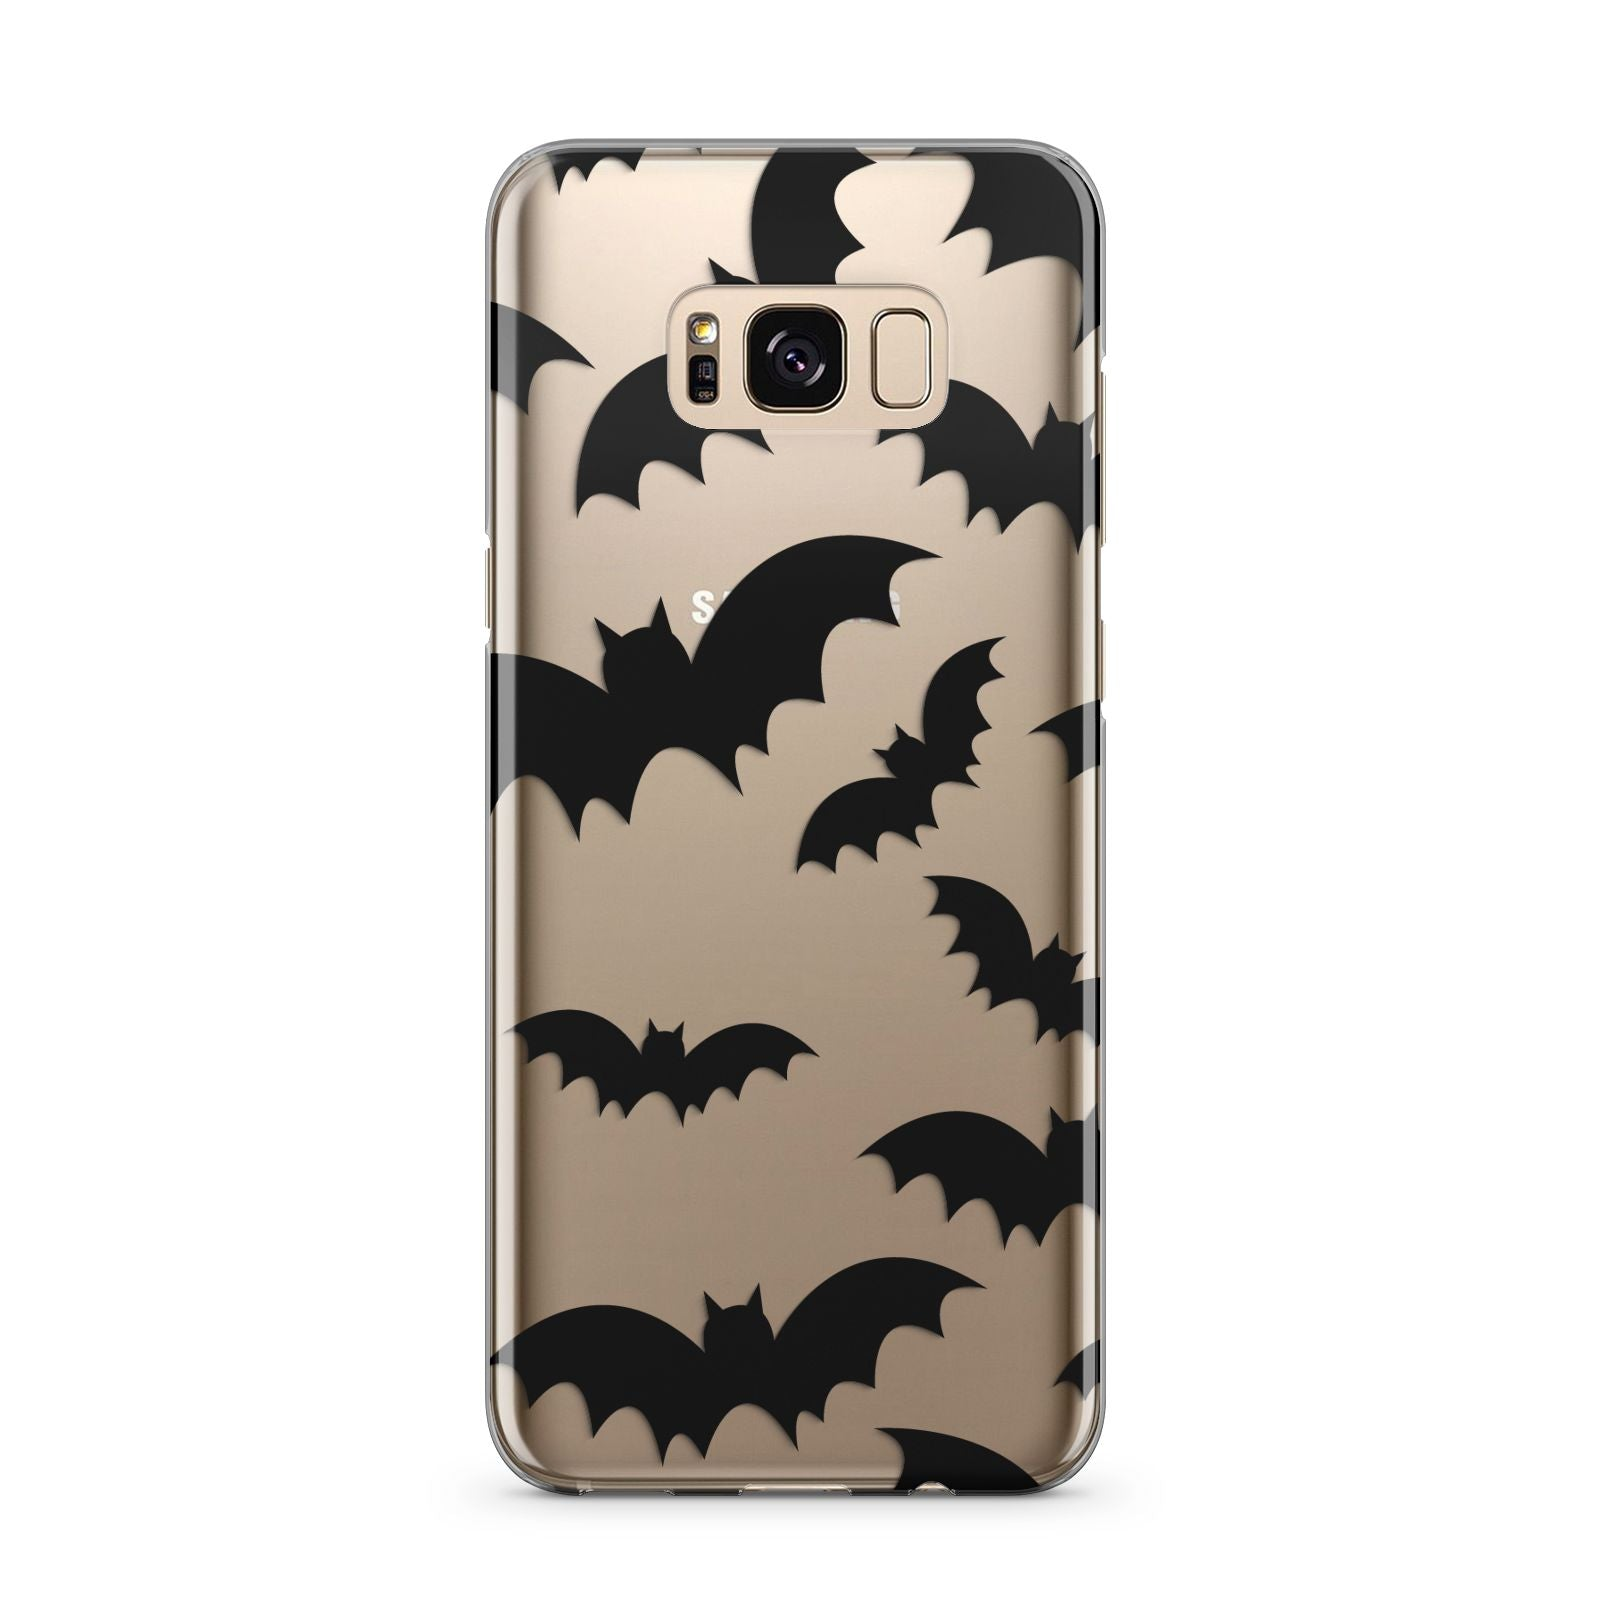 Bat Halloween Print Samsung Galaxy S8 Plus Case